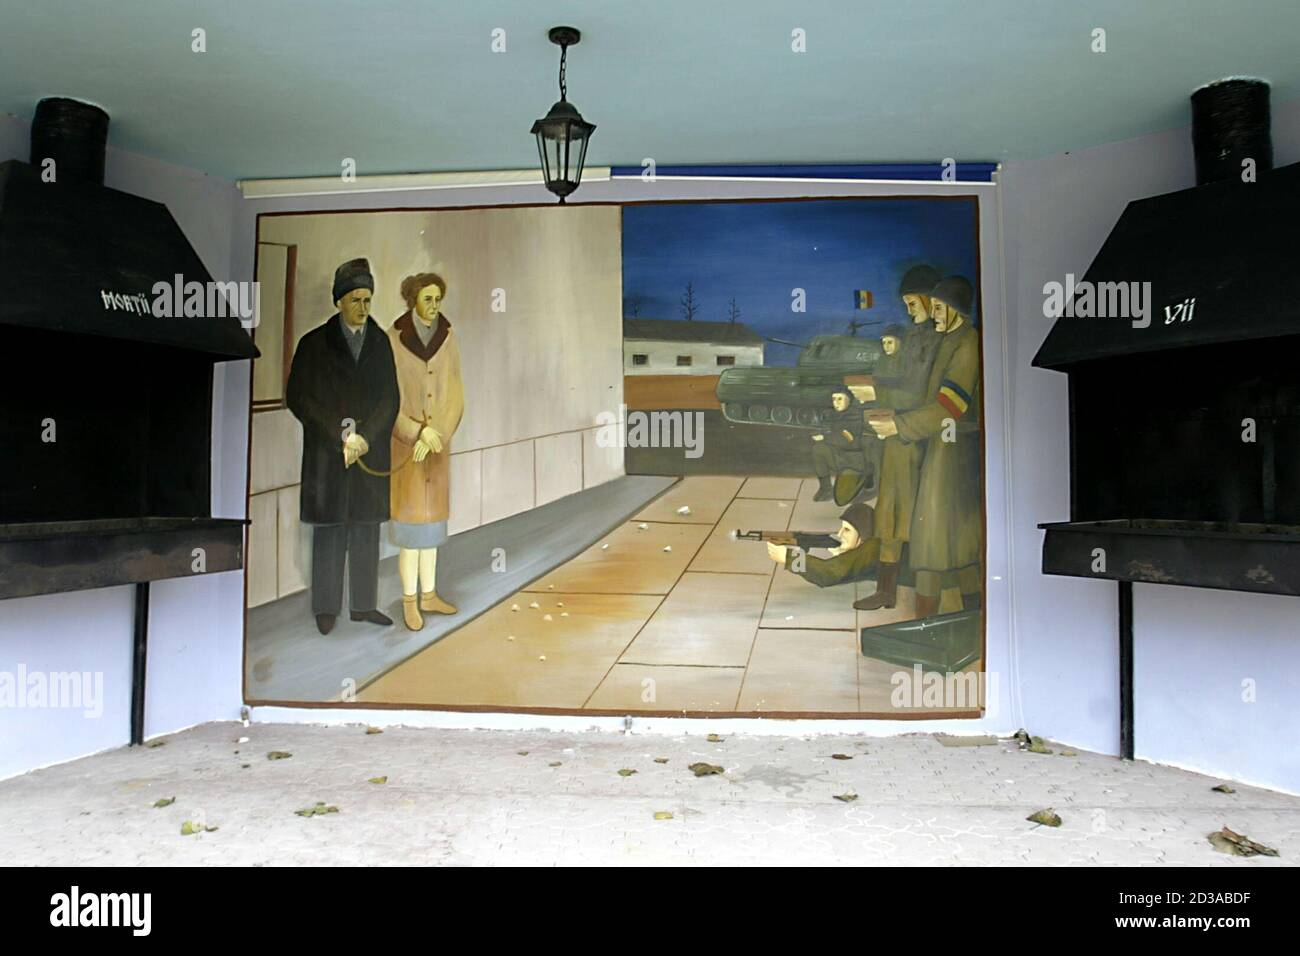 - PHOTO TAKEN 10NOV04 - The scene of the execution of Romania's late Stalinist dictator Nicolae Ceausescu and his wife Elena is painted on a wall in a private park dedicated to the country's communist past near Craiova (250km west of Bucharest) in this November 10 file picture. Many in the impoverished countryside are nostalgic of Ceausescu ahead of Sunday's elections, saying they miss the job security they enjoyed during his time, and are expected to back the ruling socialists, successors of his communist party. Stock Photo